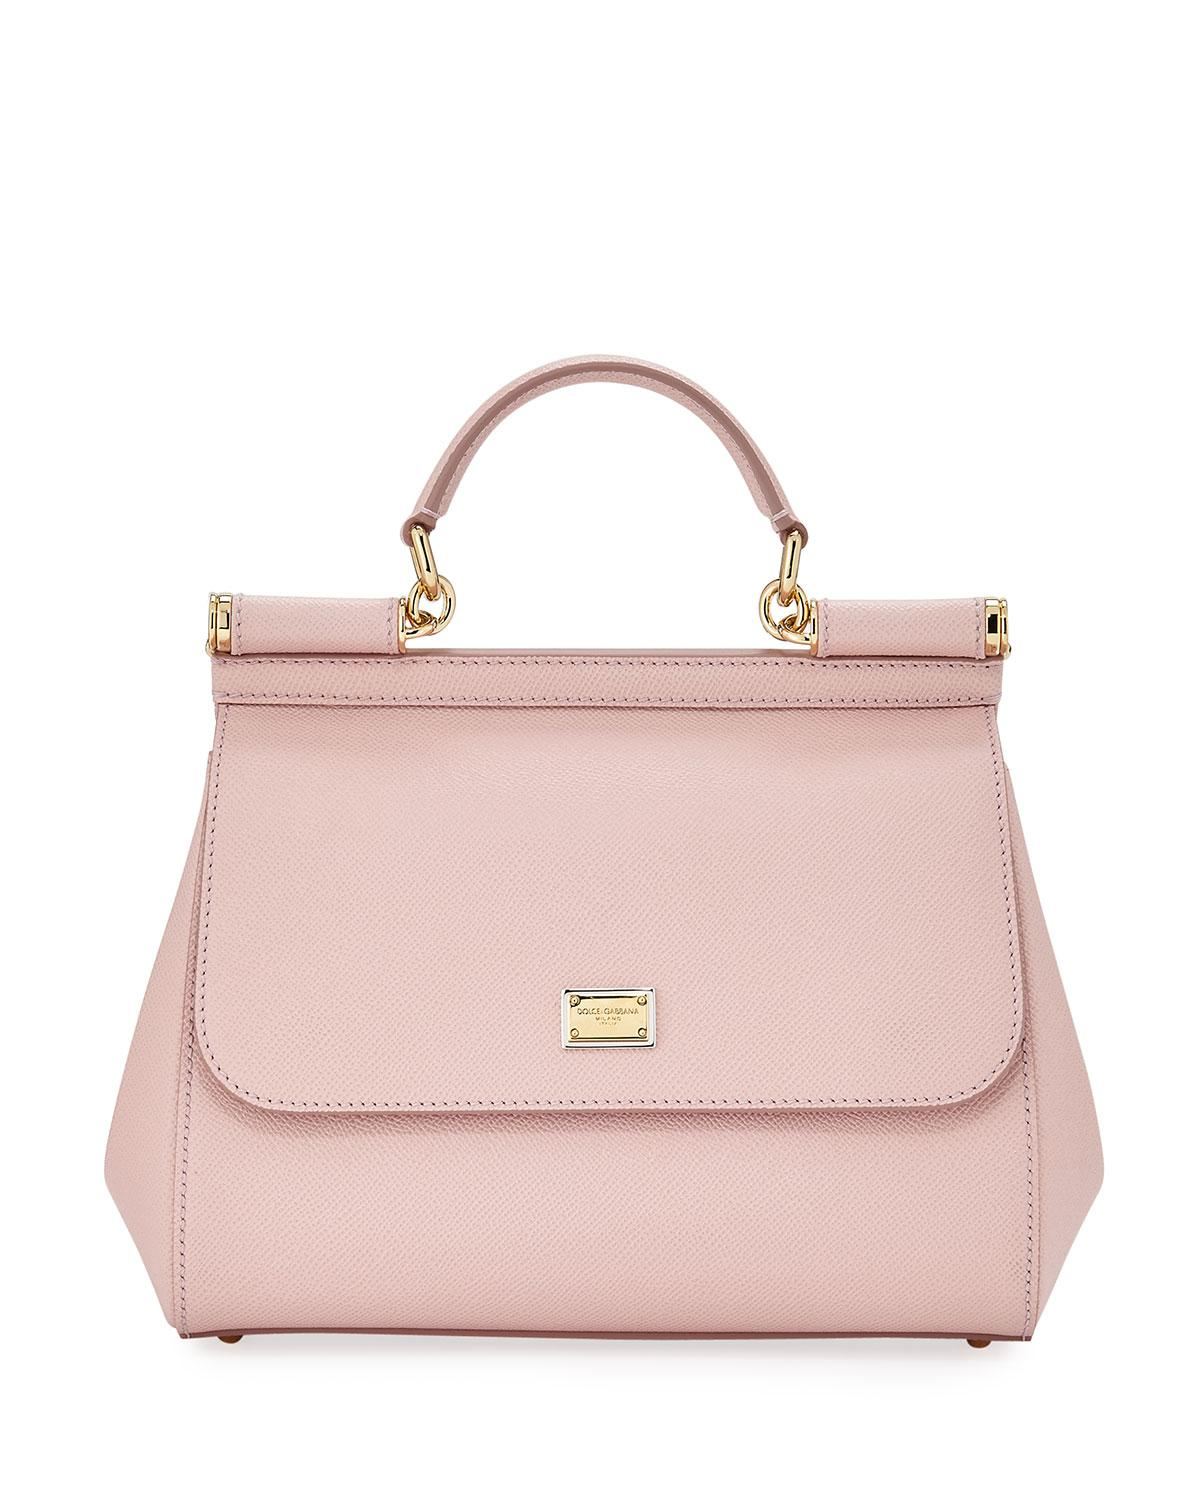 5d96a6778769 Lyst - Dolce   Gabbana Sicily Medium Calf Leather Satchel Bag in Pink